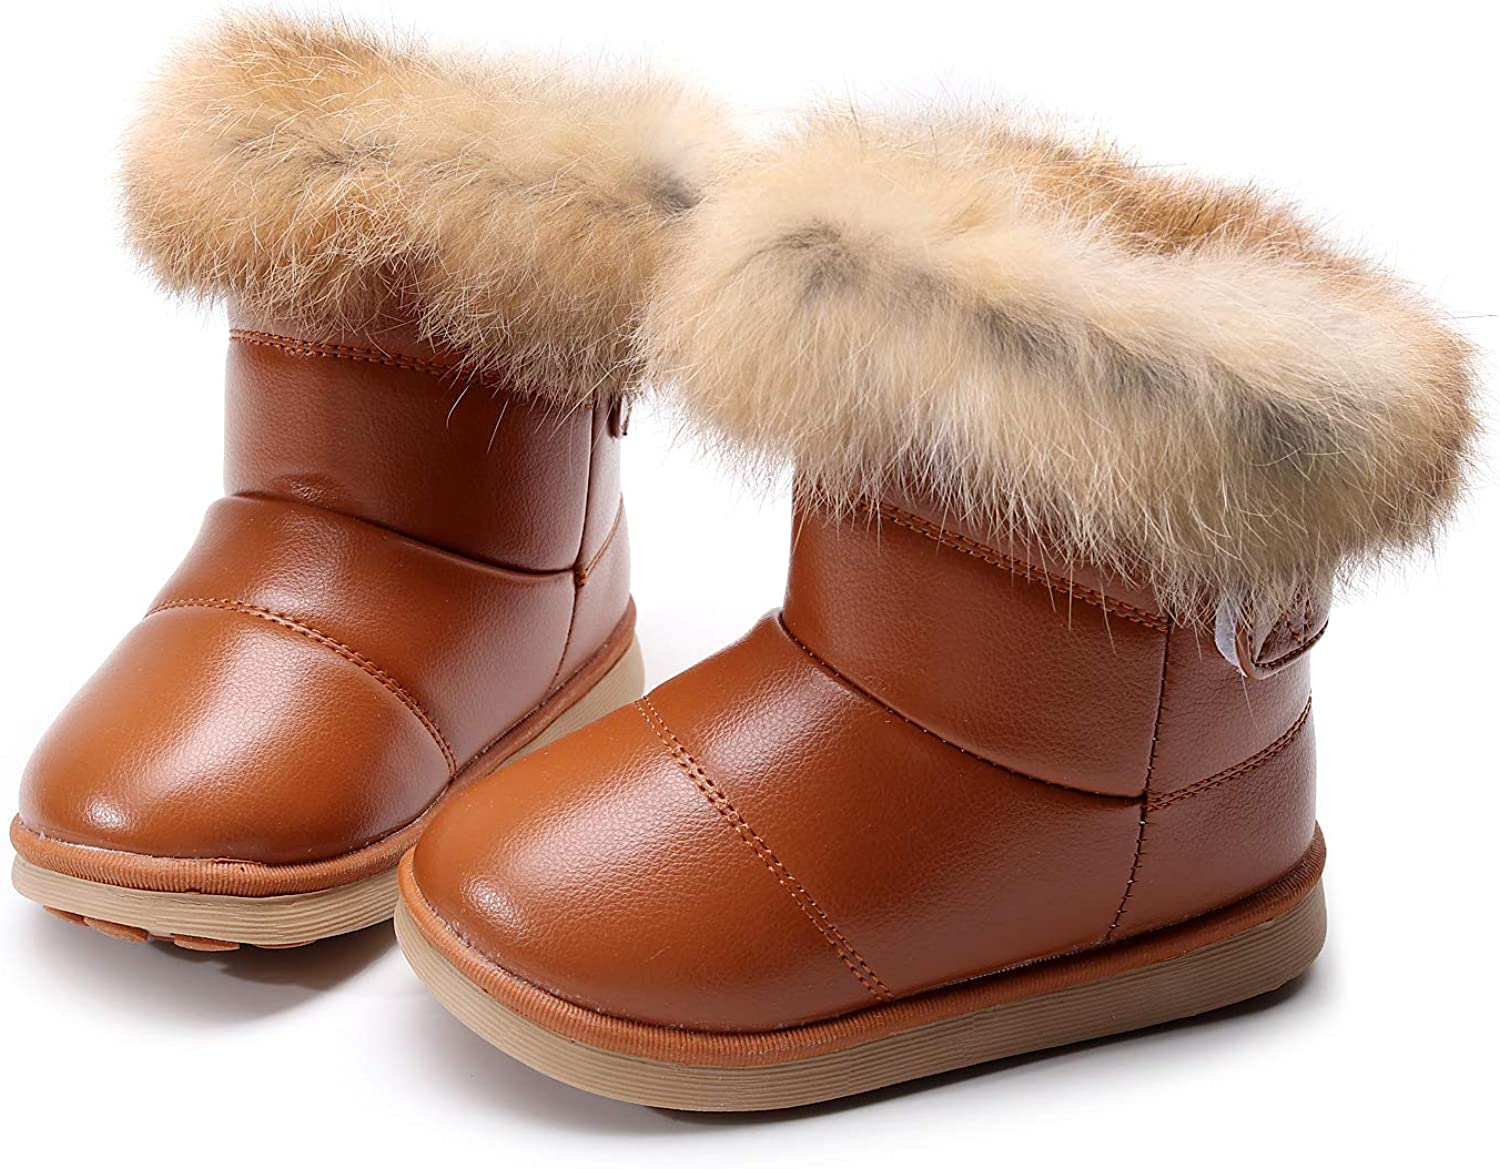 INFANTS GIRLS WINTER SNOW FUR ANKLE BOOT-LACE UP GRIP SOLE ZIPPER BOYS BOOT